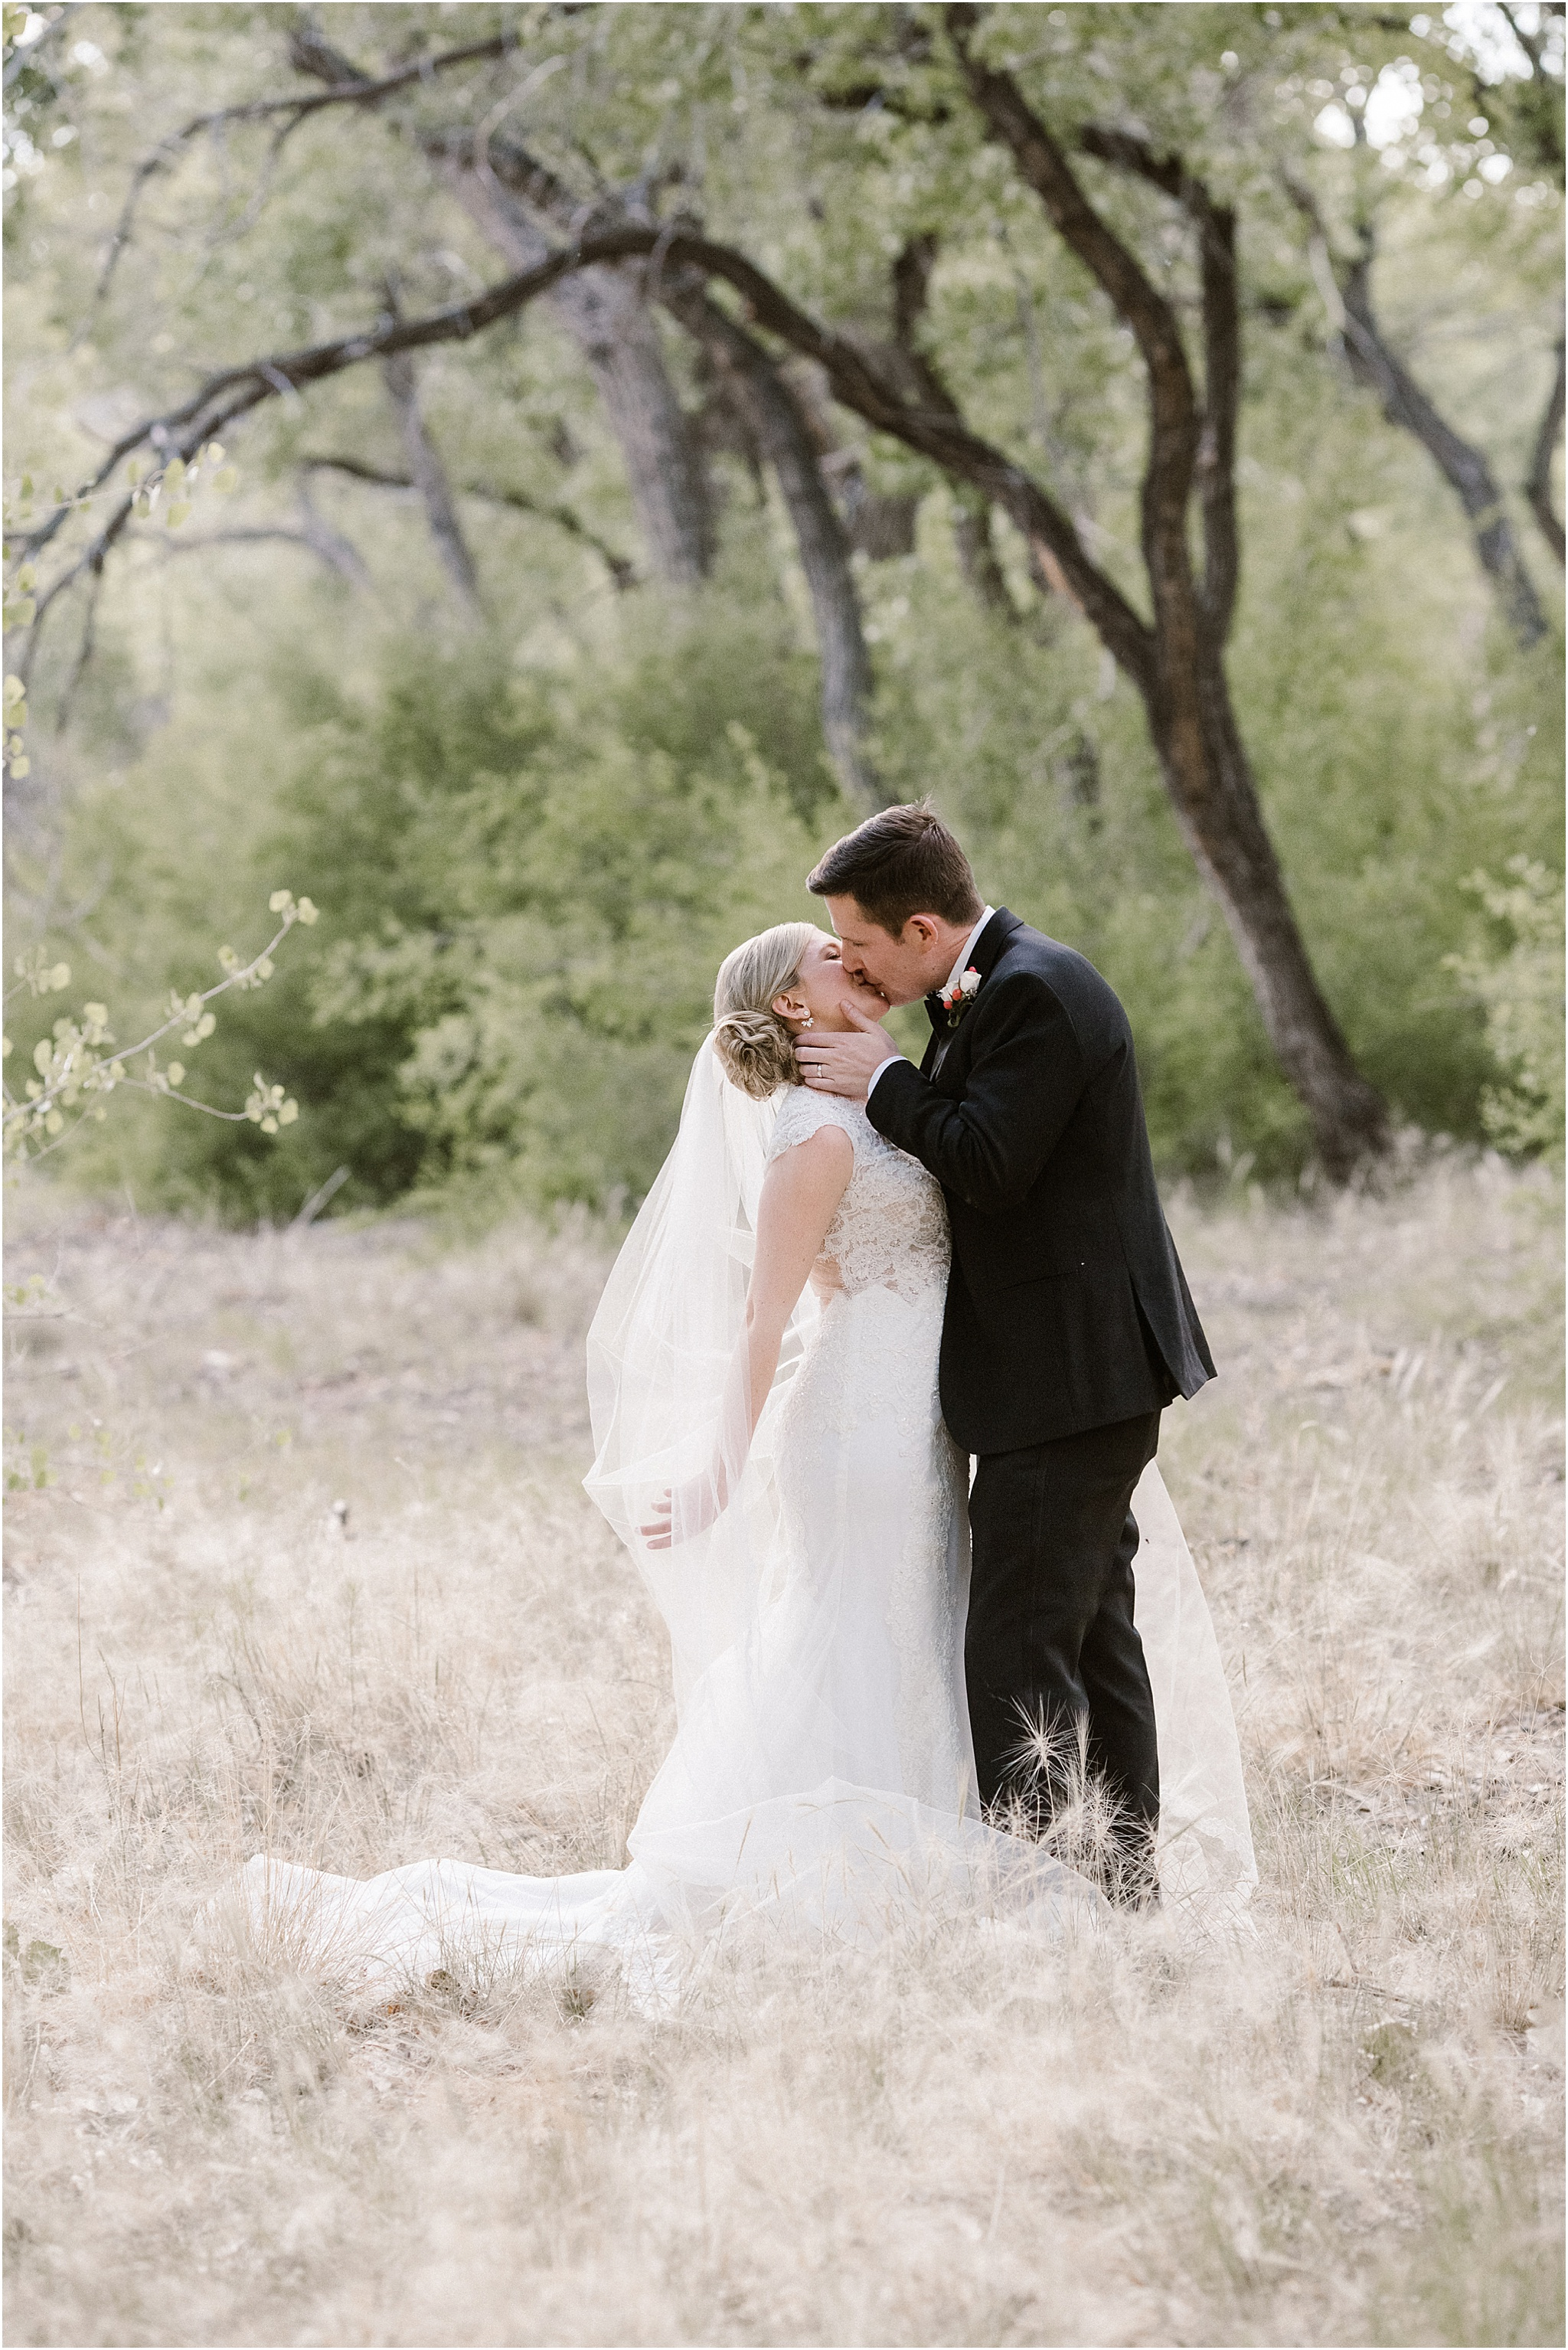 JENNA_JEROME_BLUE ROSE PHOTOGRAPHY_ABQ WEDDING_35